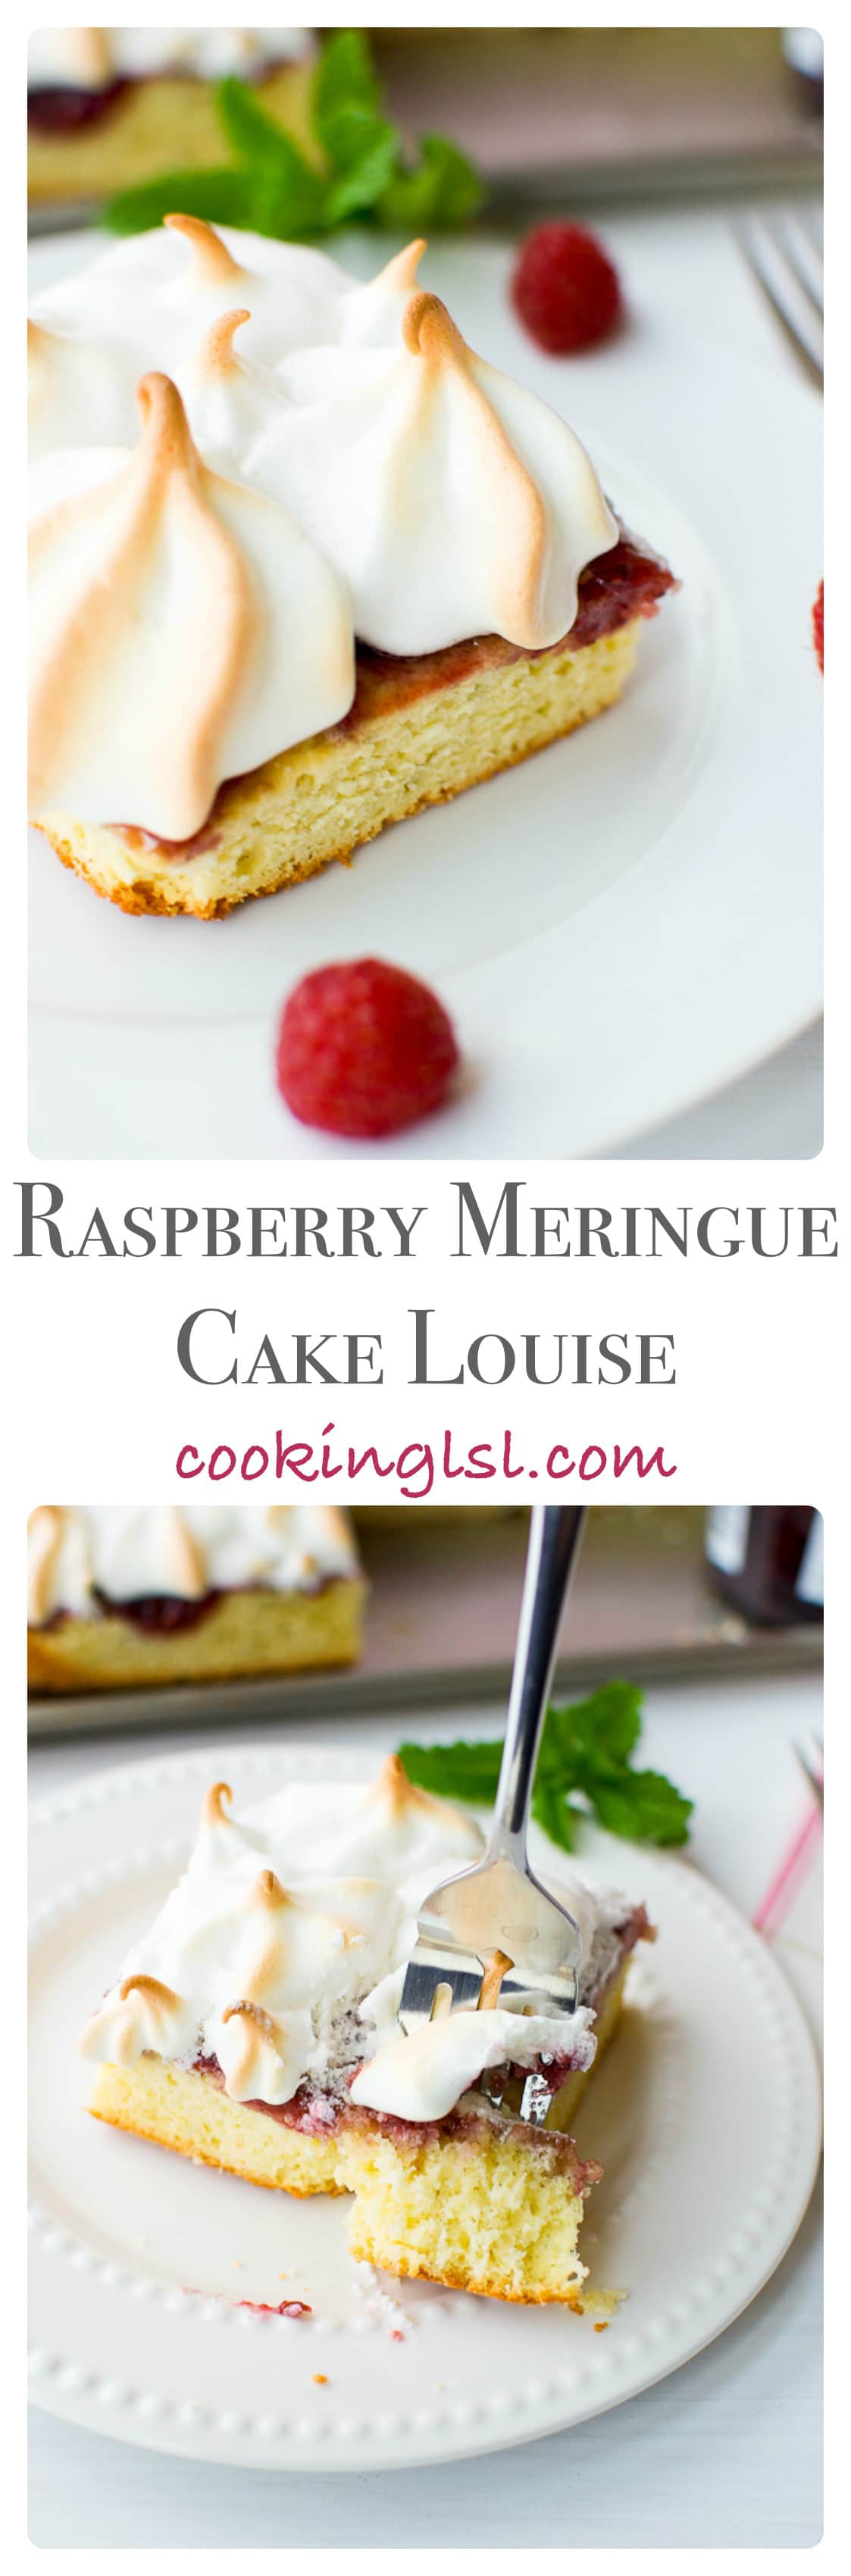 RASPBERRY-JAM-AND-MERINGUE-CAKE-LOUISE-LADIES-CAPRICE